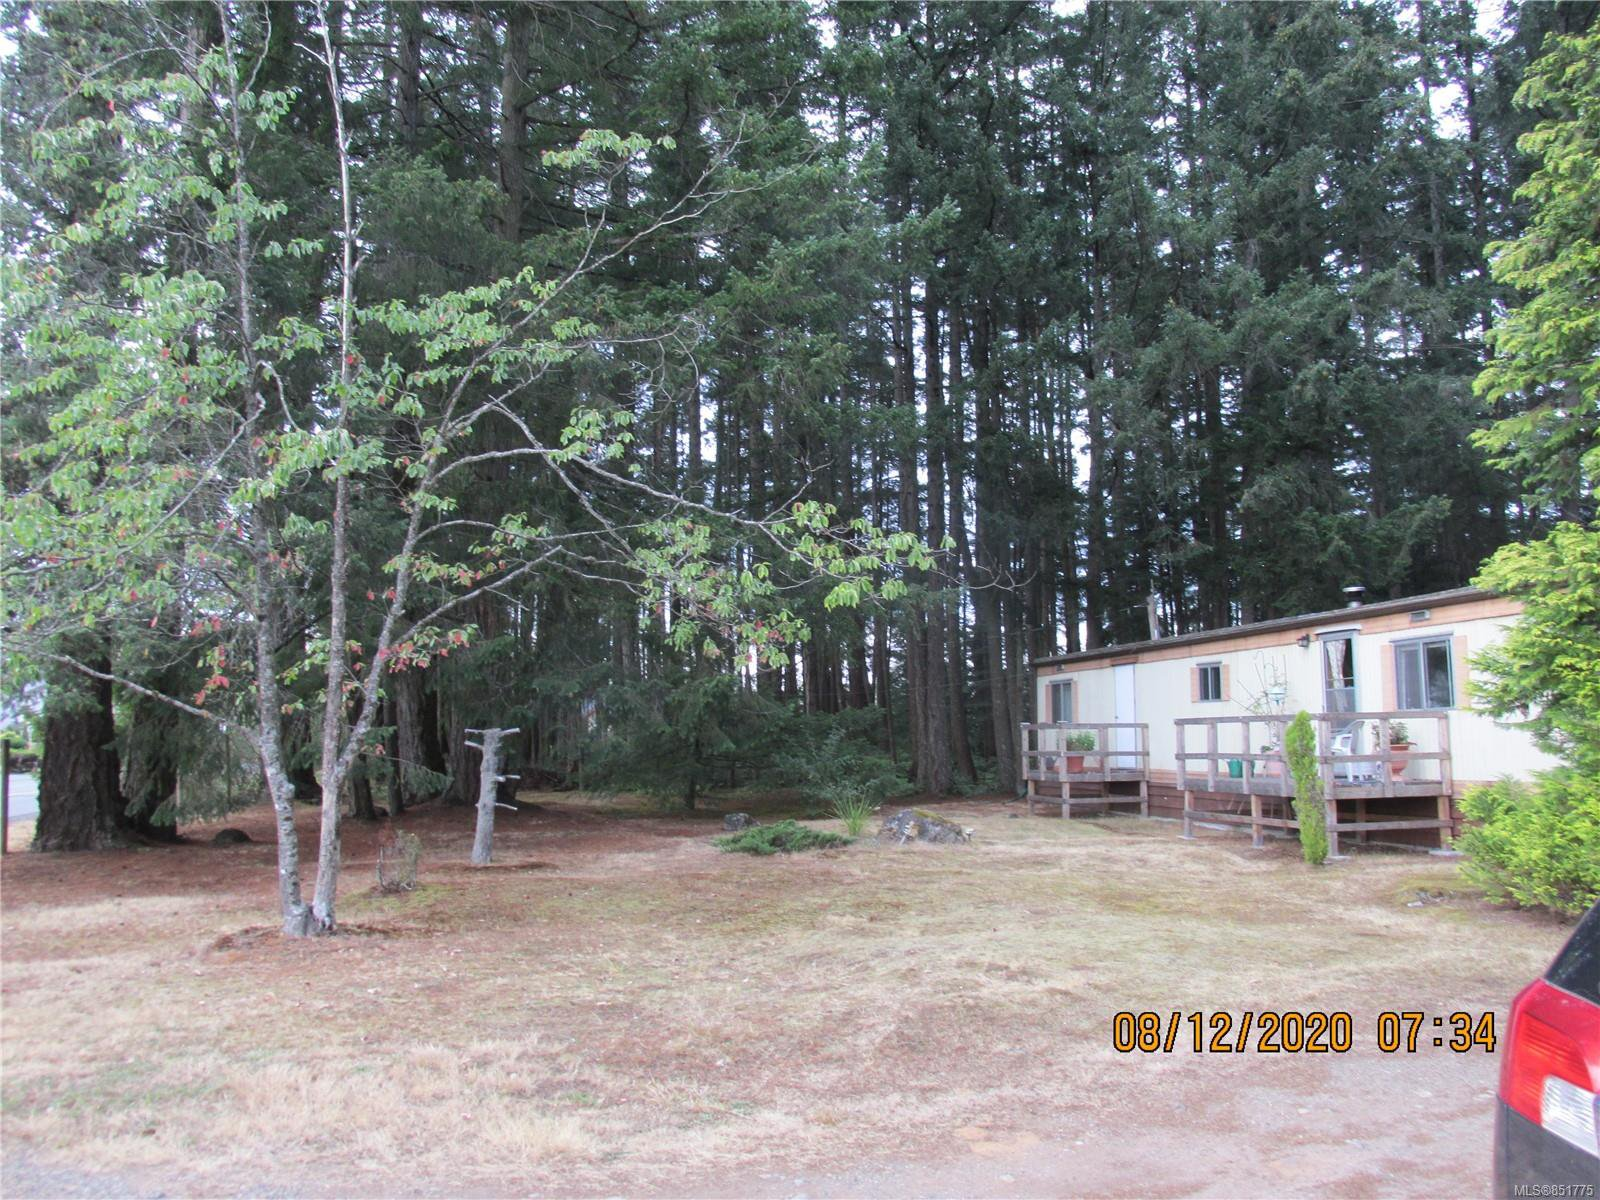 Main Photo: 480 Torrence Rd in : CV Comox Peninsula Manufactured Home for sale (Comox Valley)  : MLS®# 851775